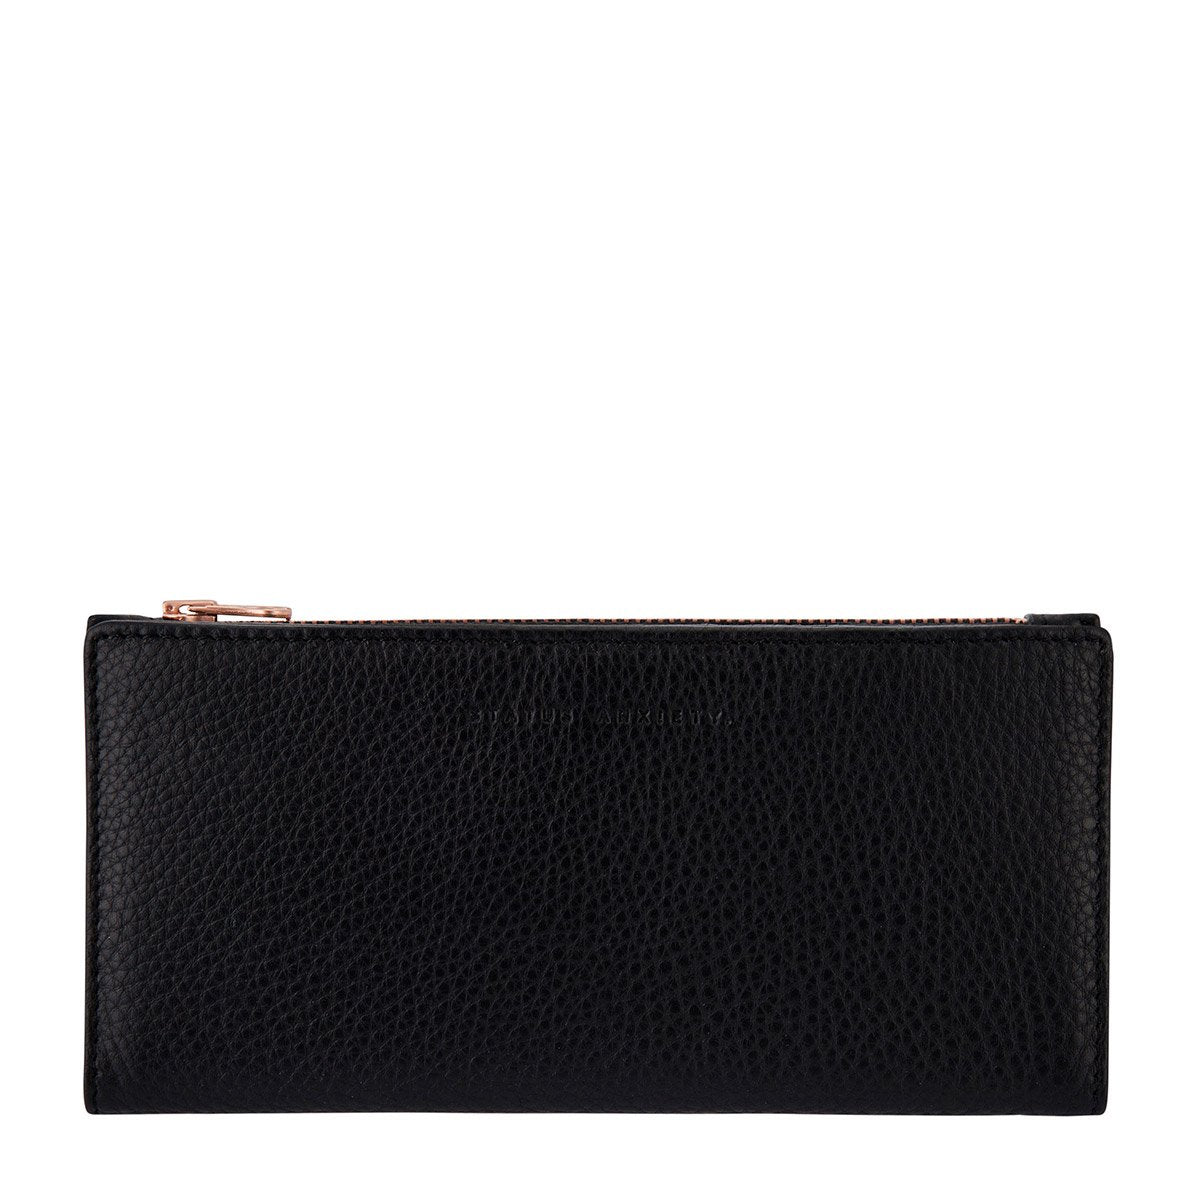 In The Beginning Wallet black